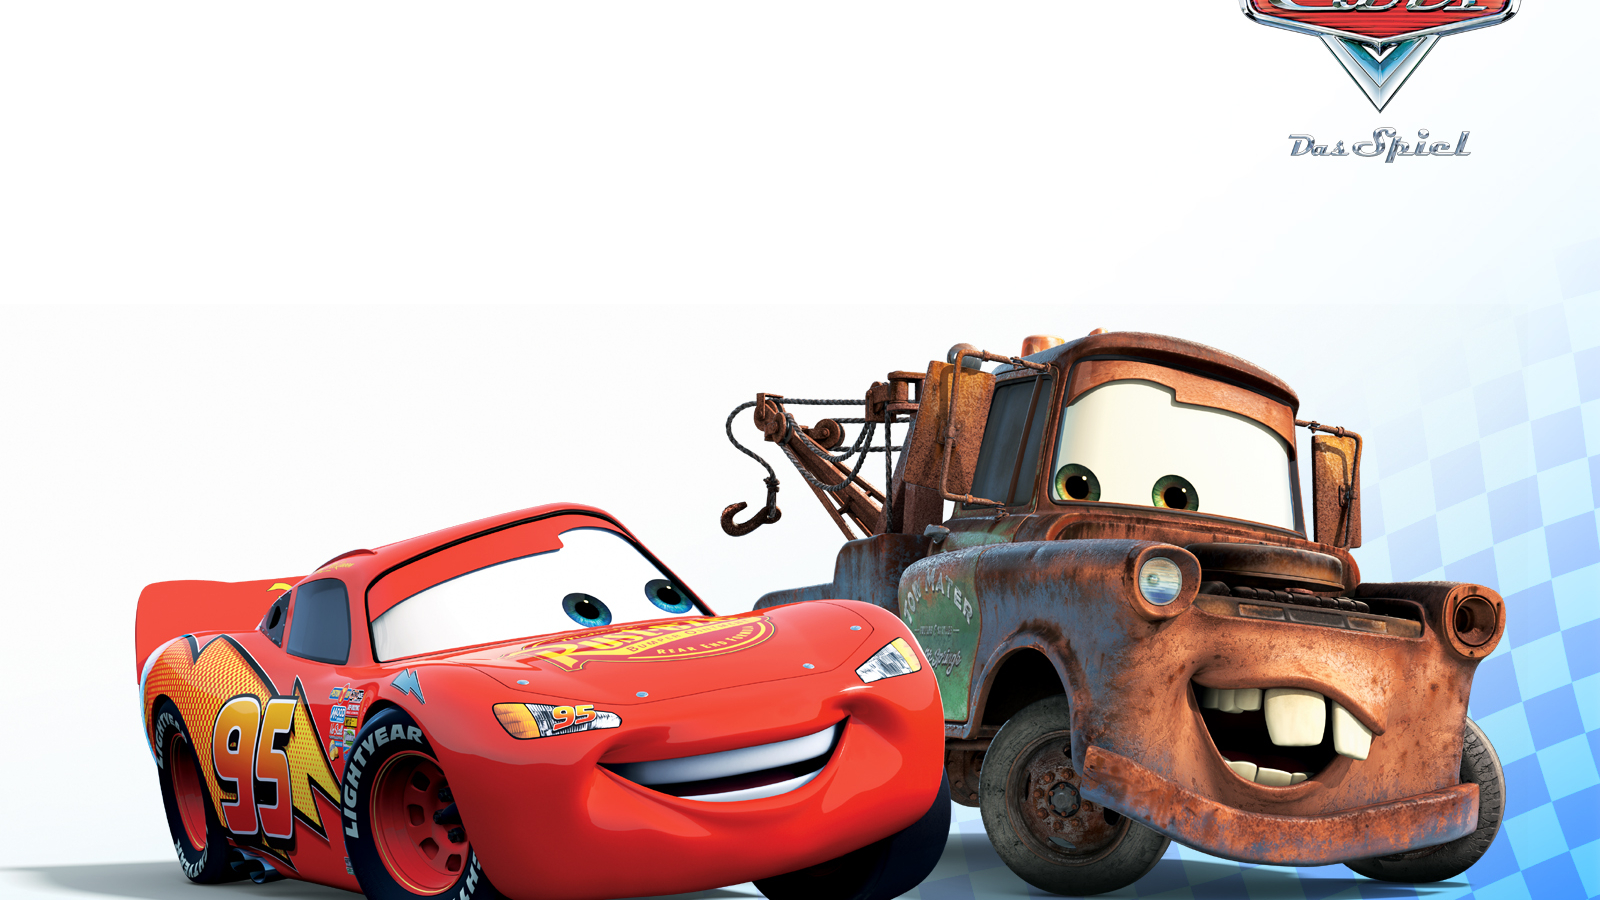 Disney Cars Wallpaper Disney Cars Wallpapers 1600x1200. Download  Resolutions: Desktop: 1600x900 ...